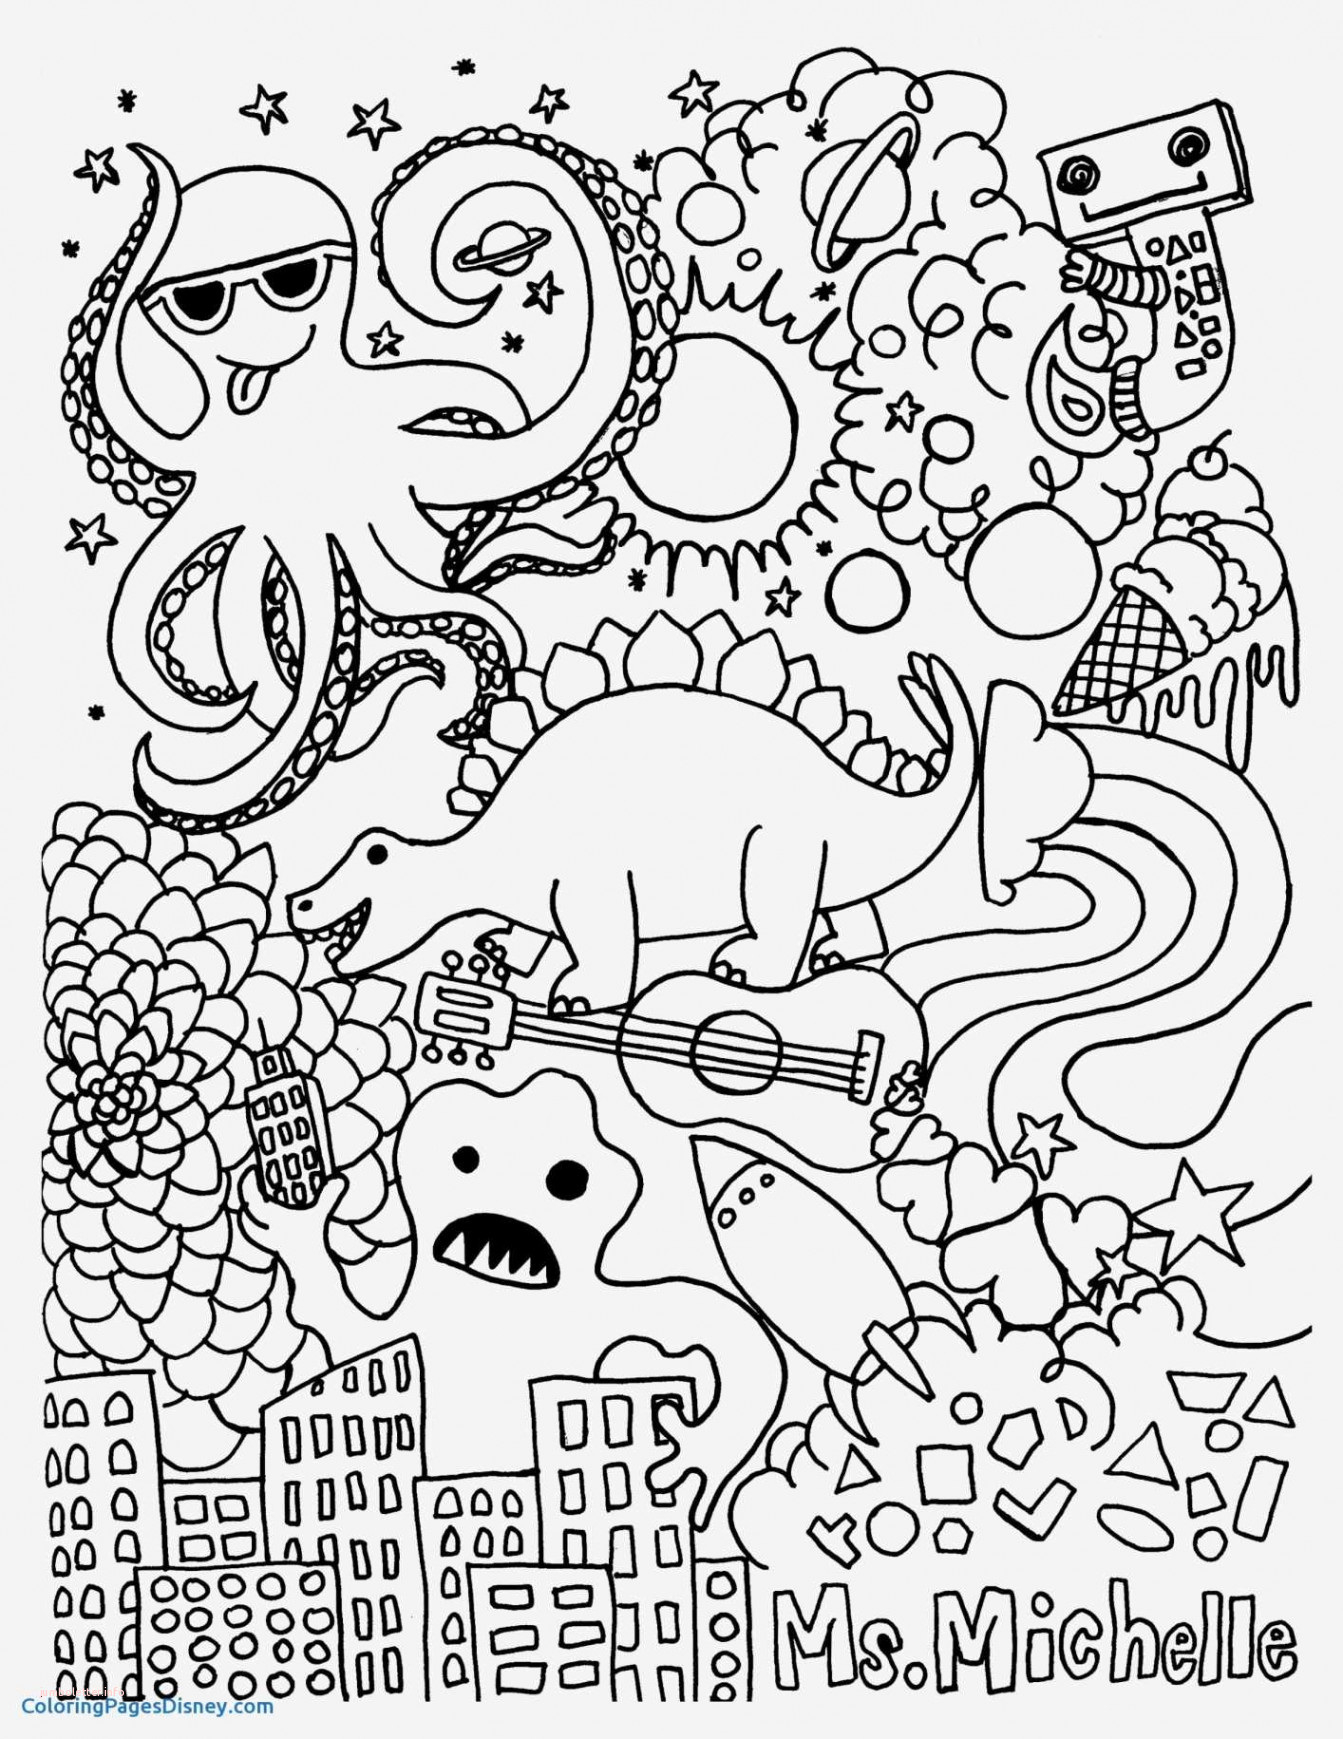 oriental trading coloring pages Download-Oriental Trading Free Christmas Coloring Pages Elegant Christmas Coloring Books for Kids Letramac 17-l